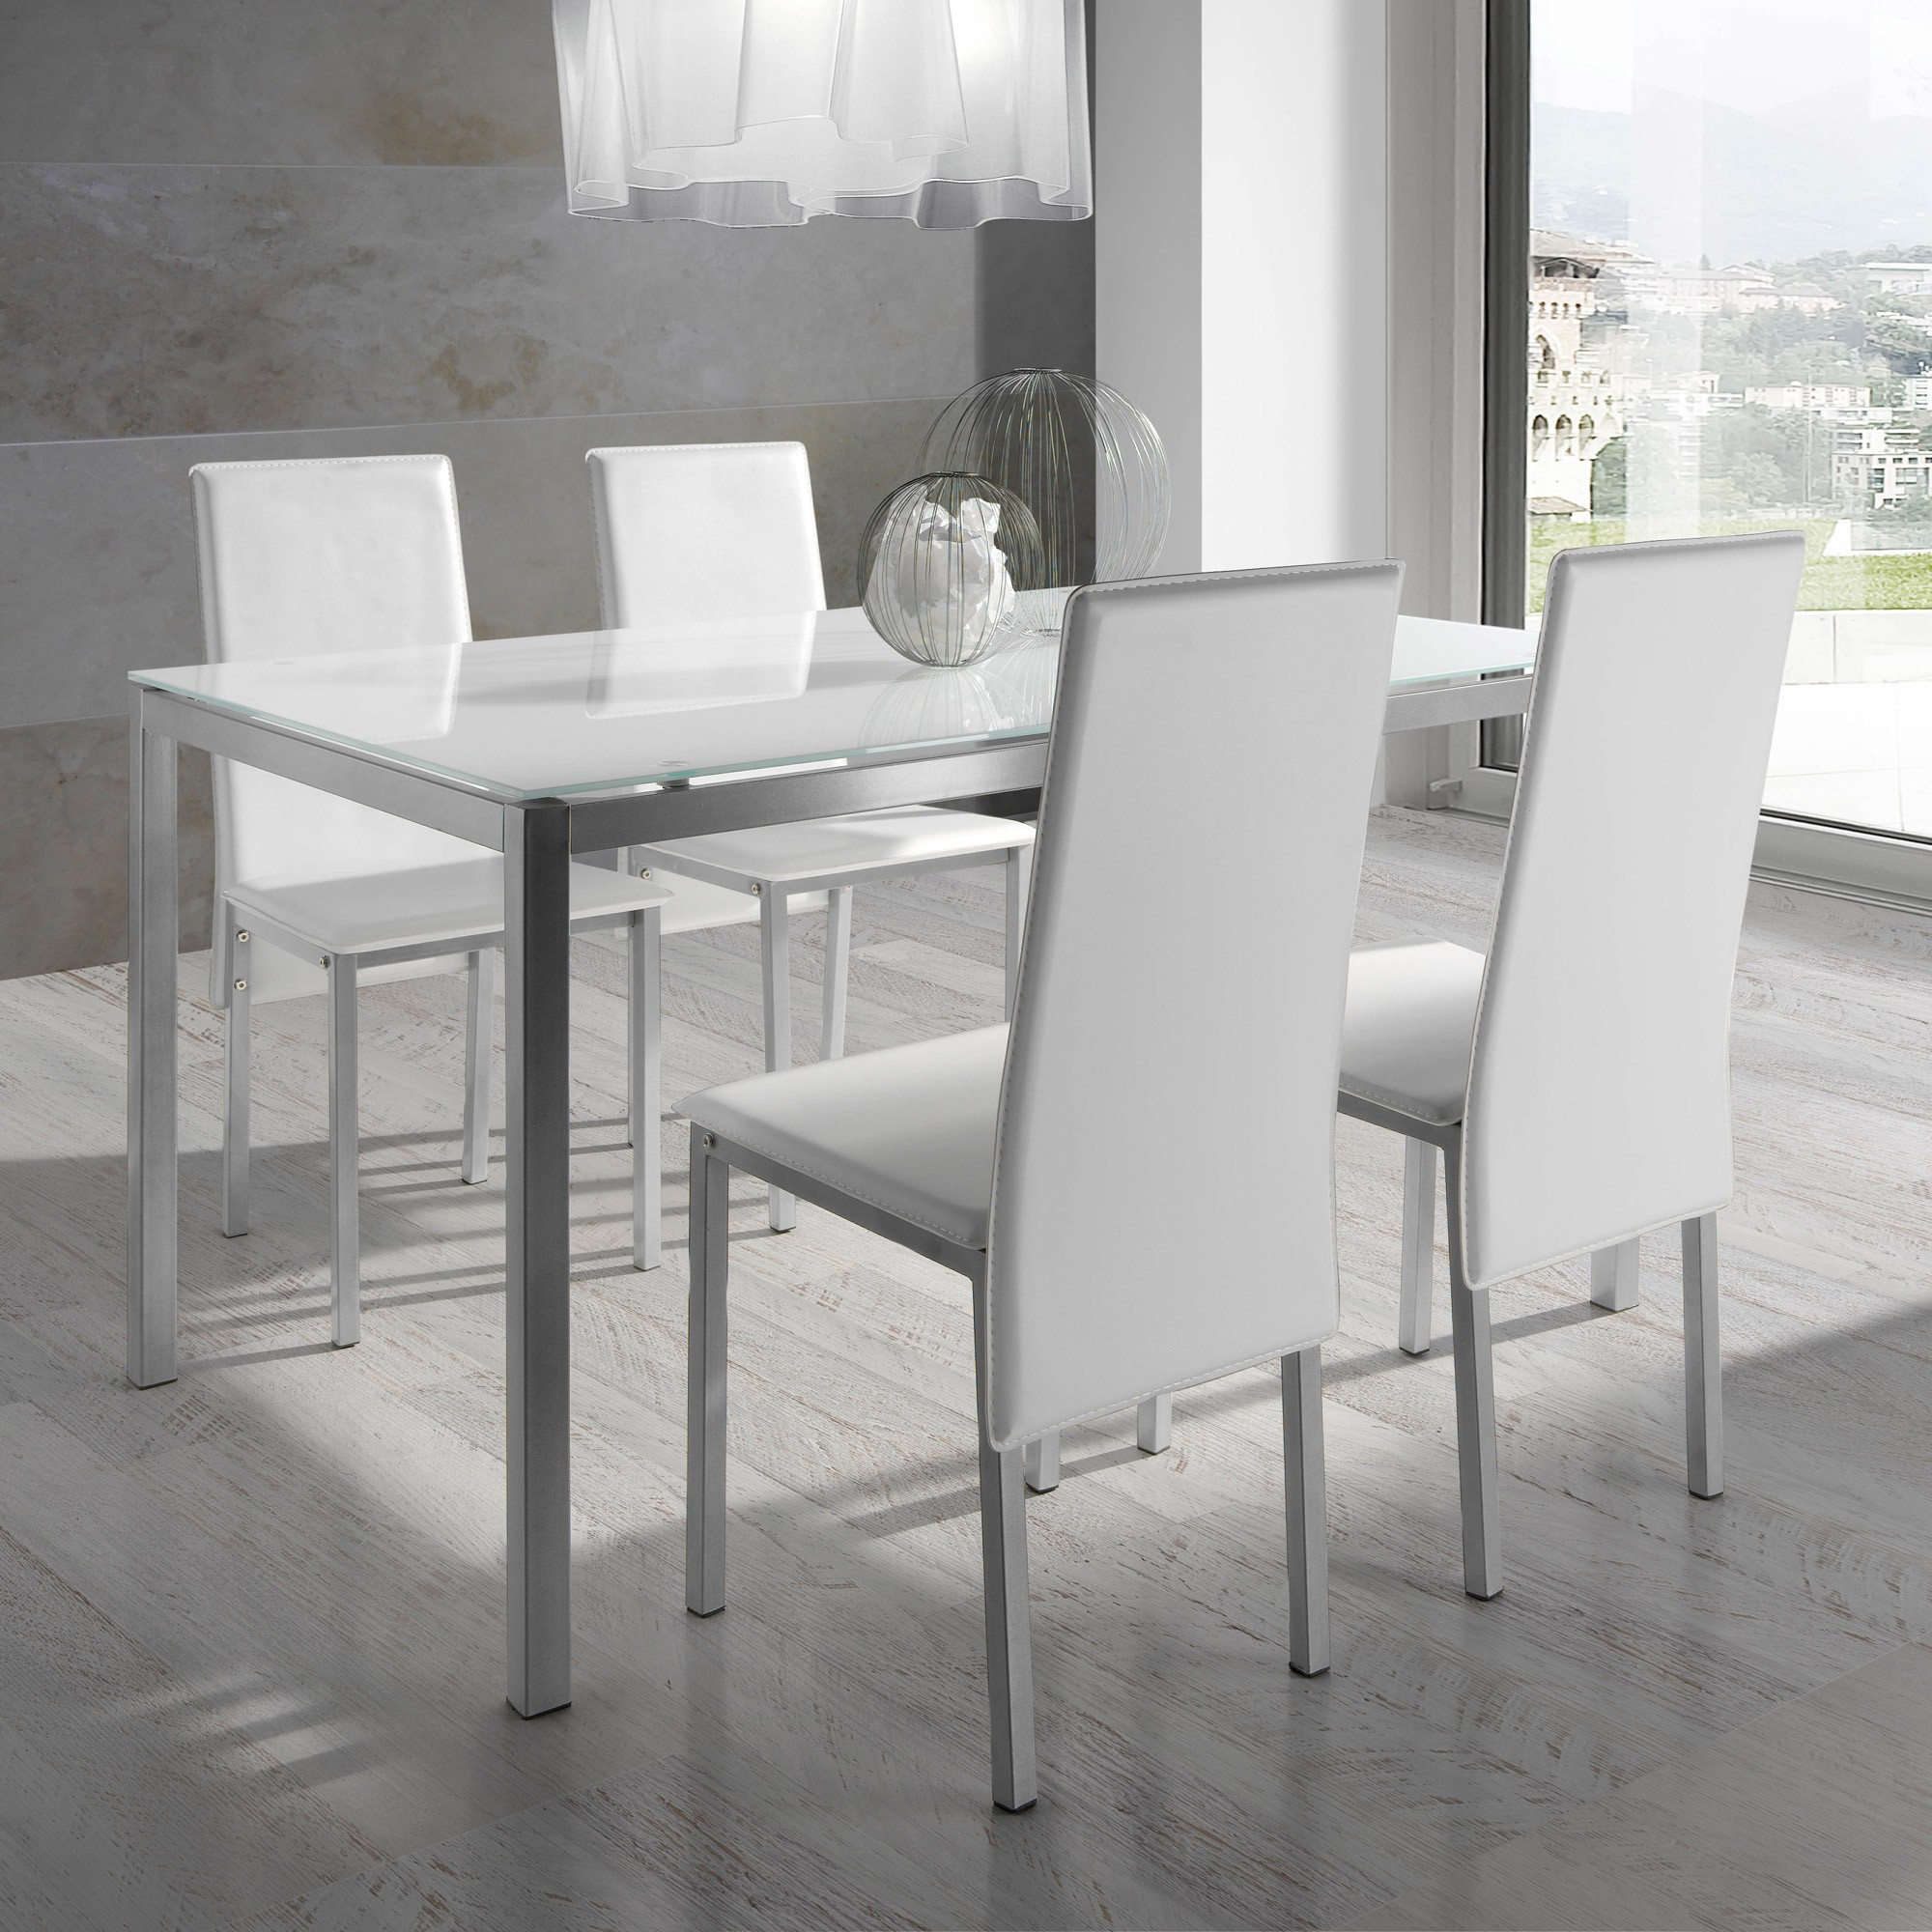 Ensemble table et chaise salle a manger but chaise Ensemble salle a manger design